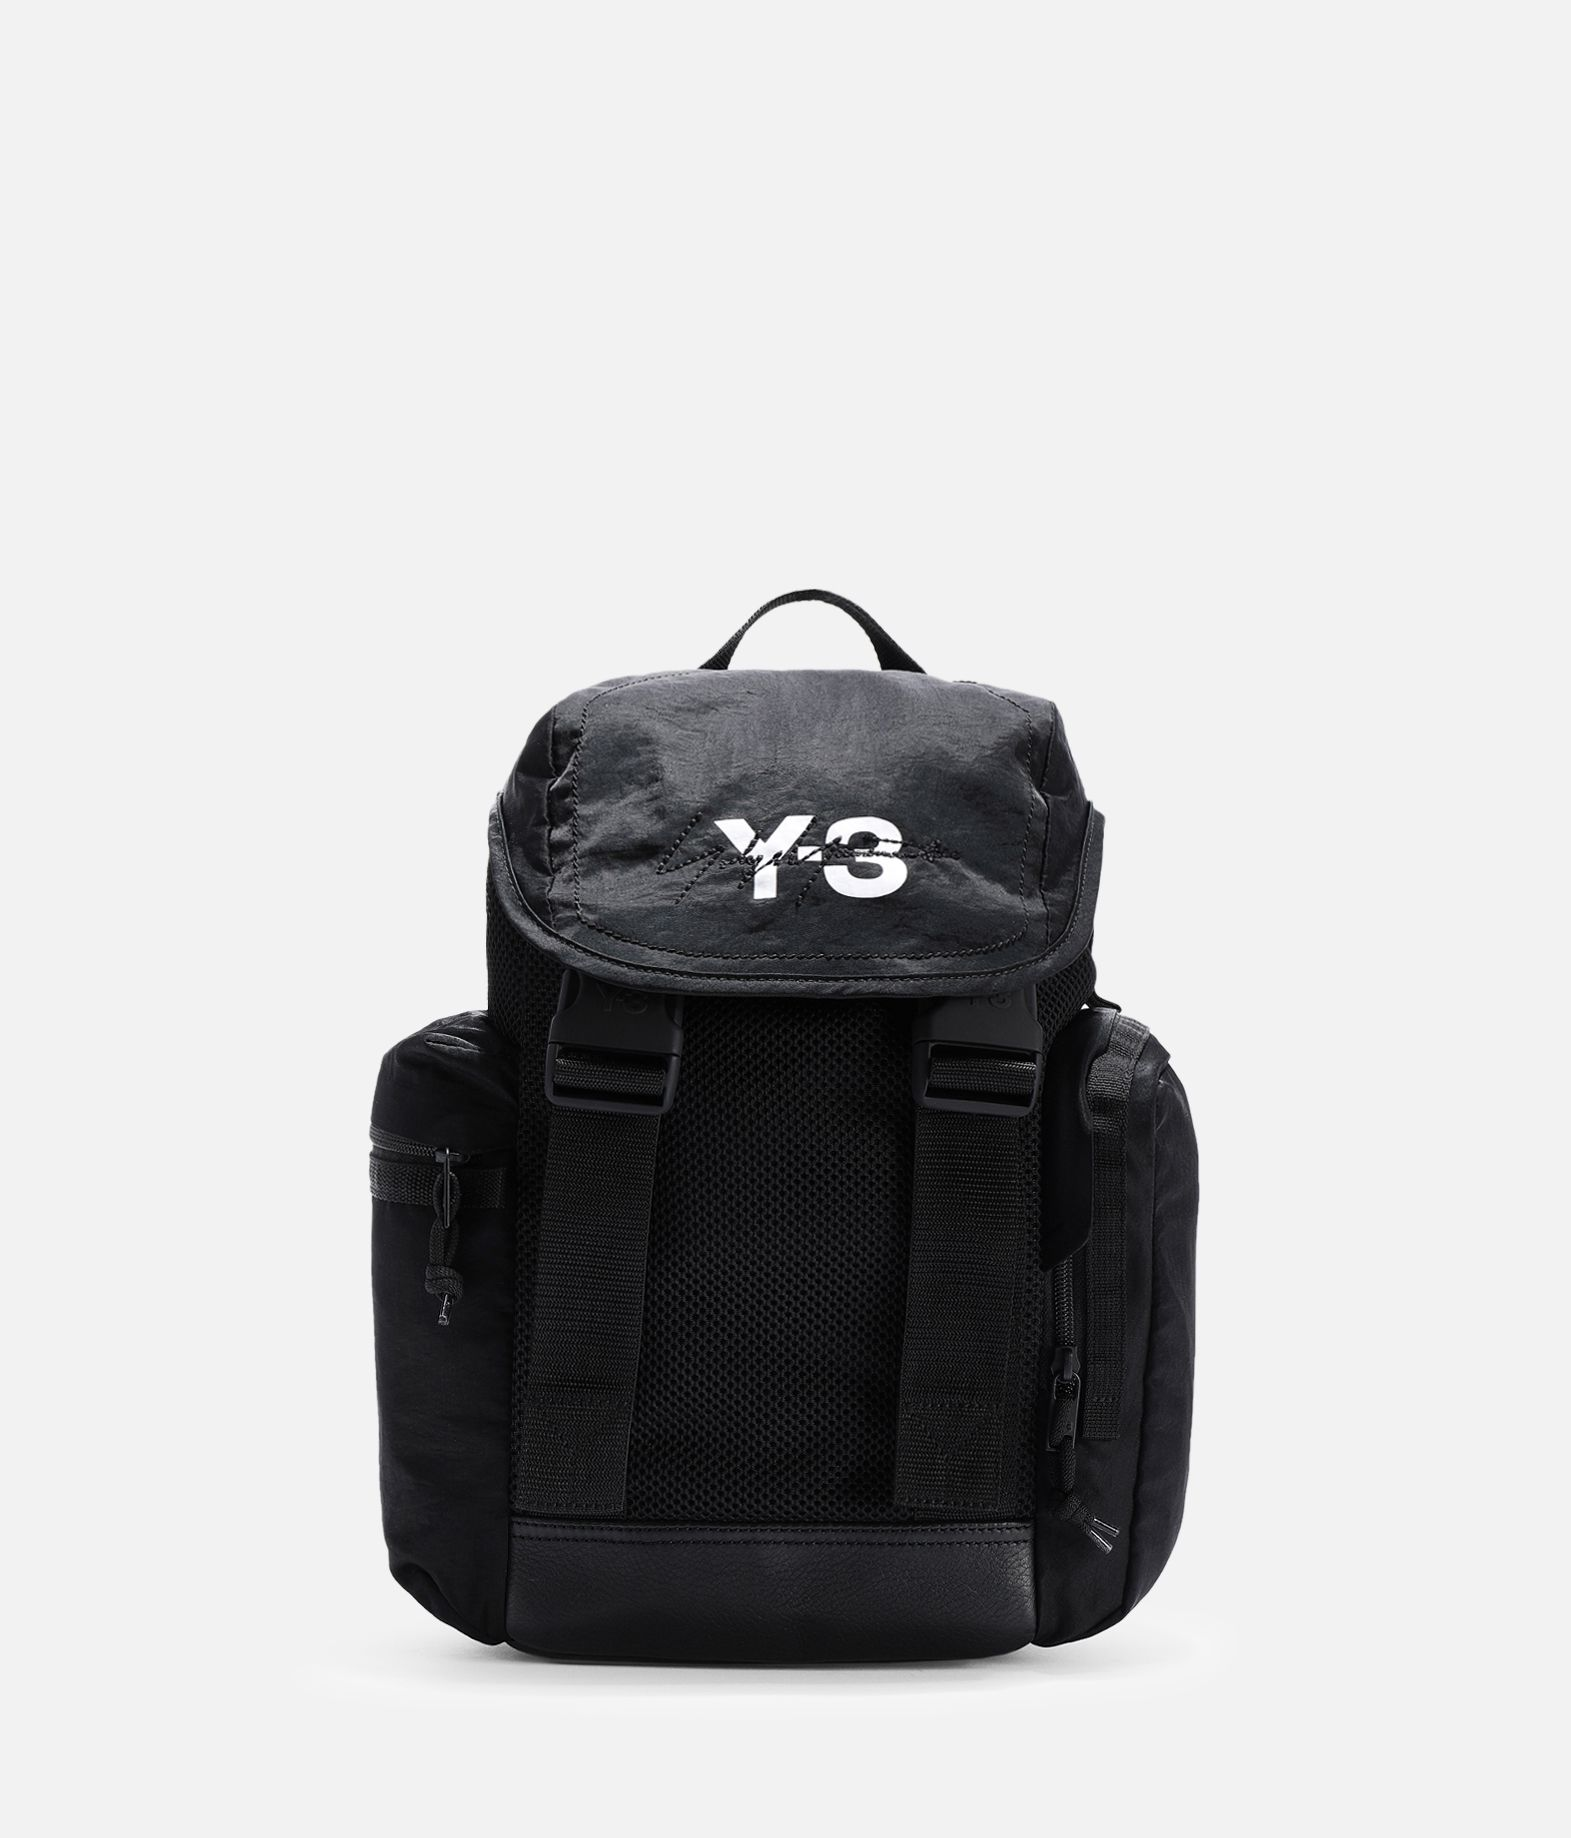 Y-3 Y-3 XS Mobility Bag Backpack E f